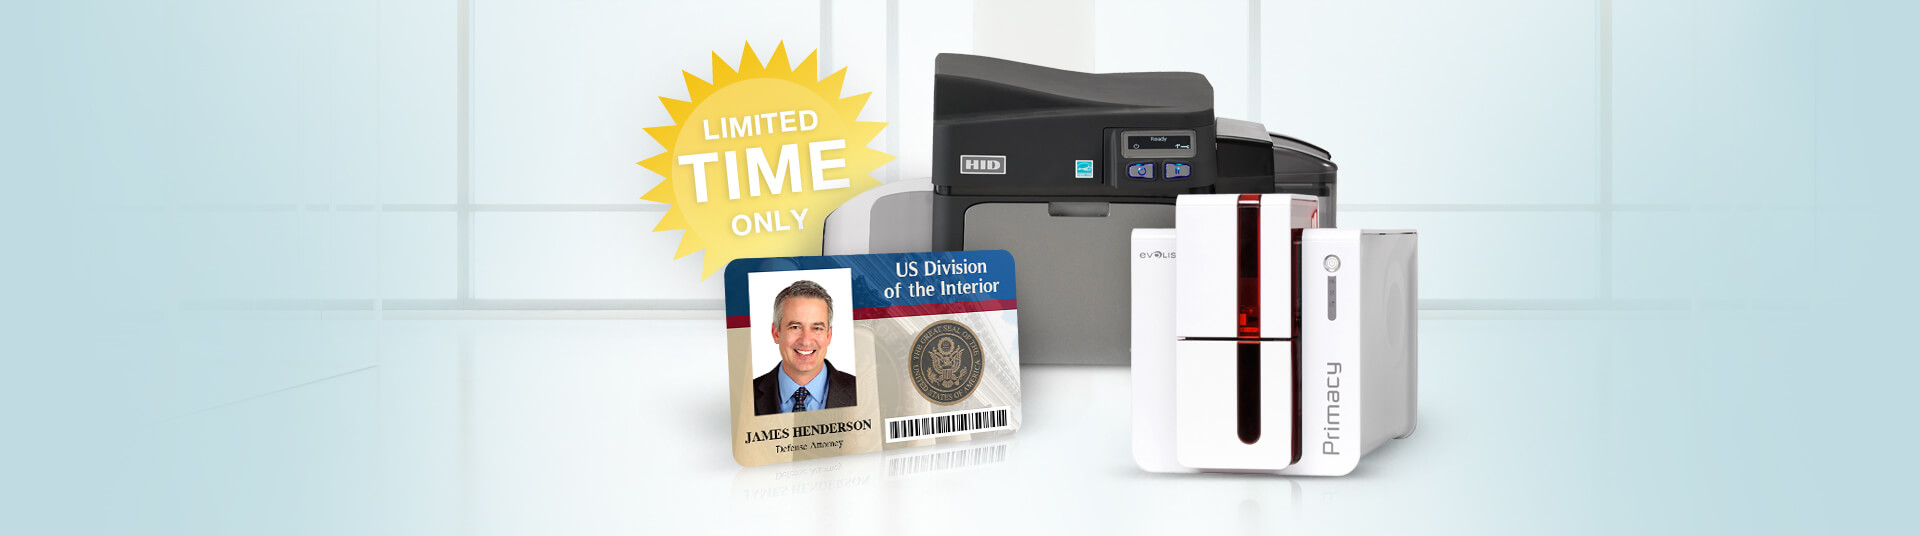 ID Card Printer Rebate Offers